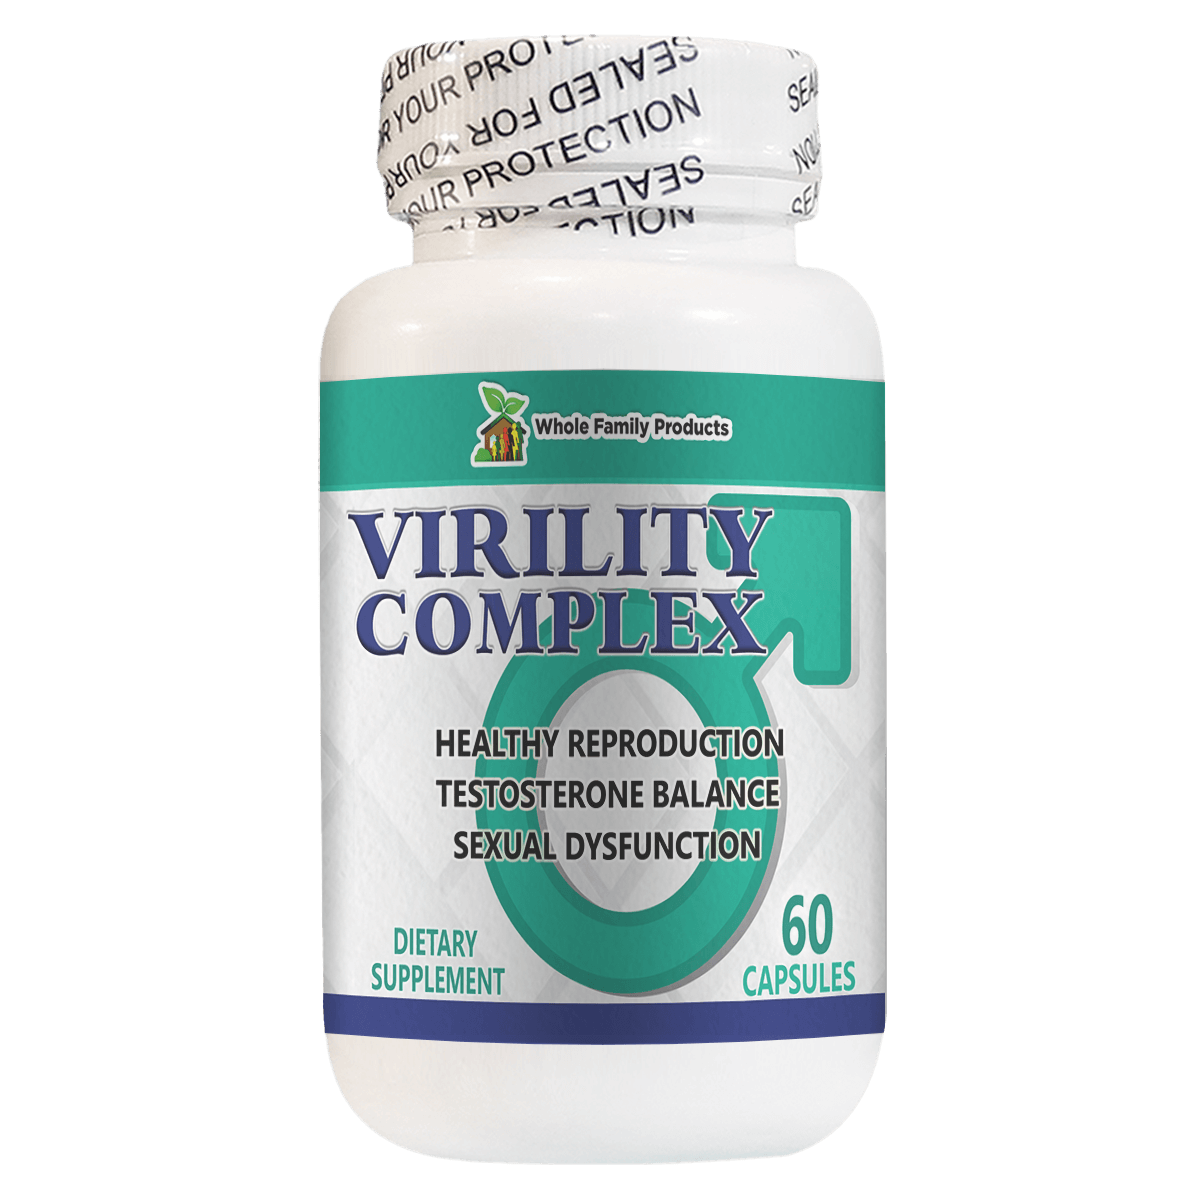 Virility Complex Natural Help for Sexual Dysfunction